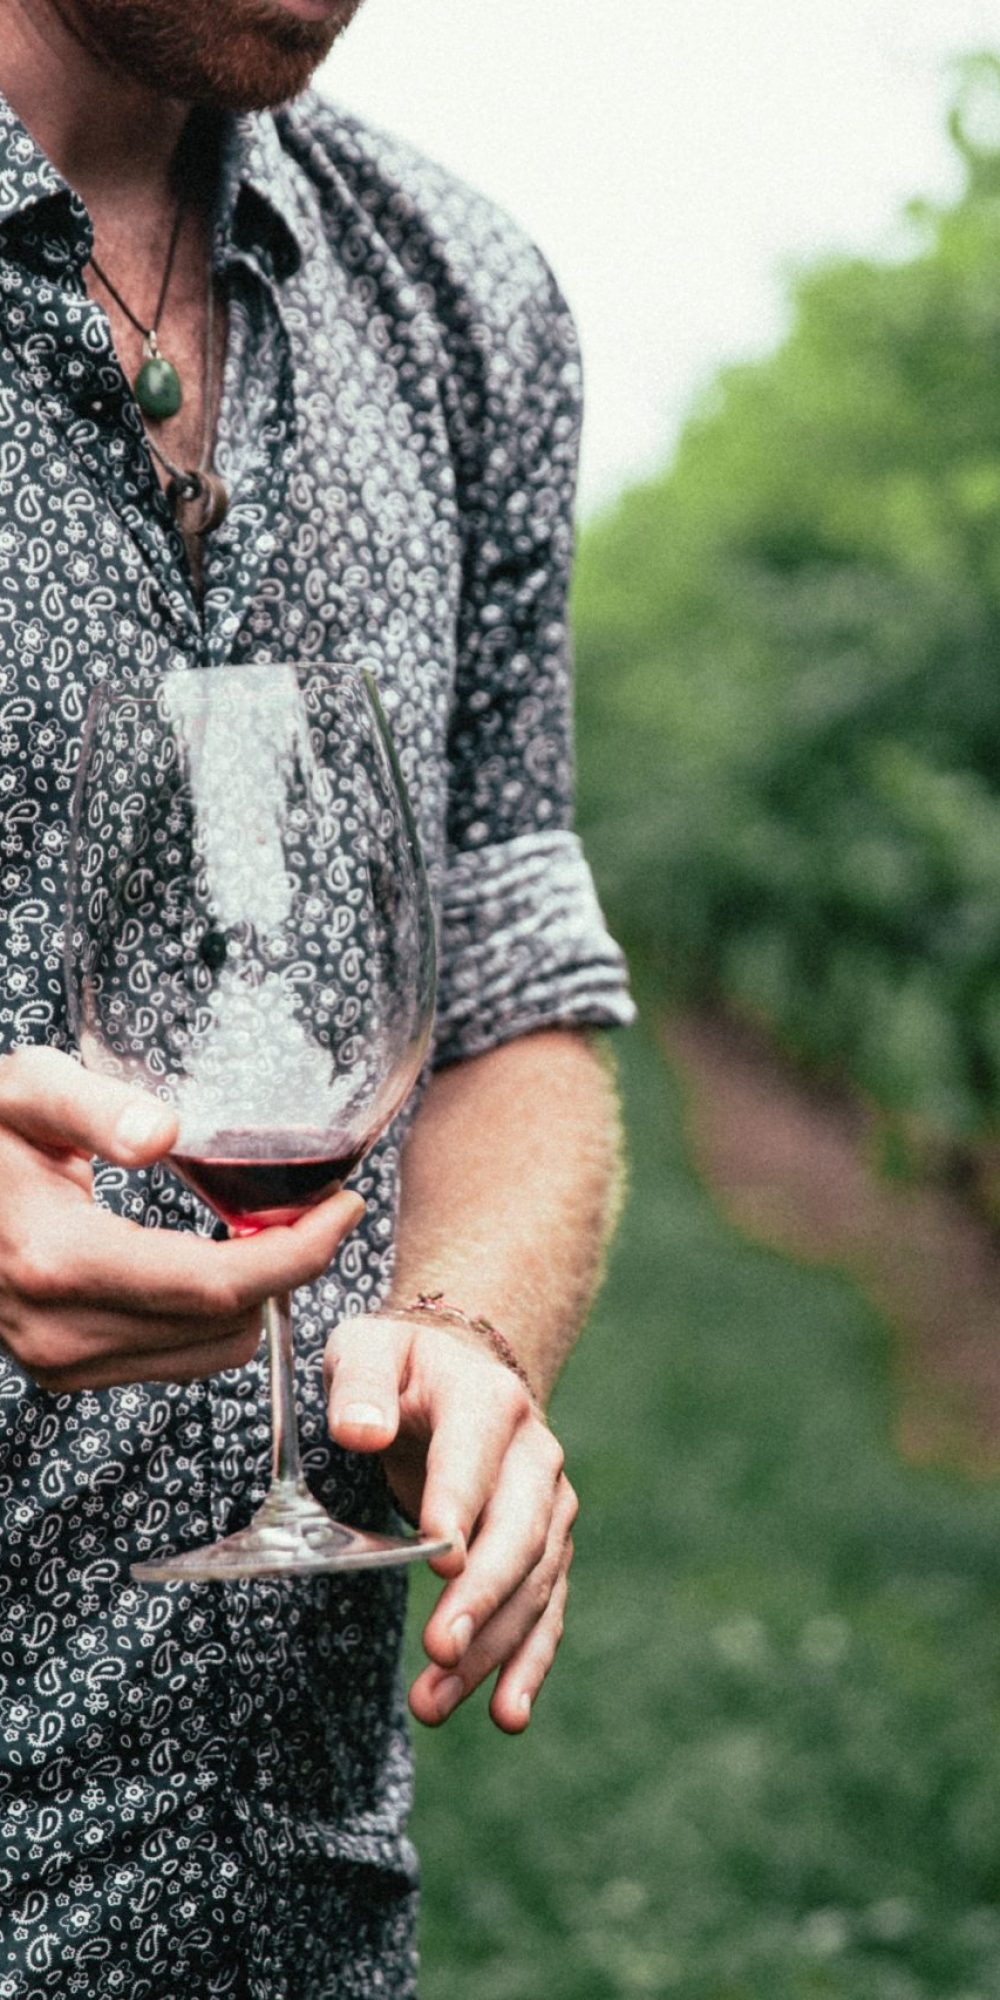 mens-fashion-close-up-patterned-shirt-red-wine